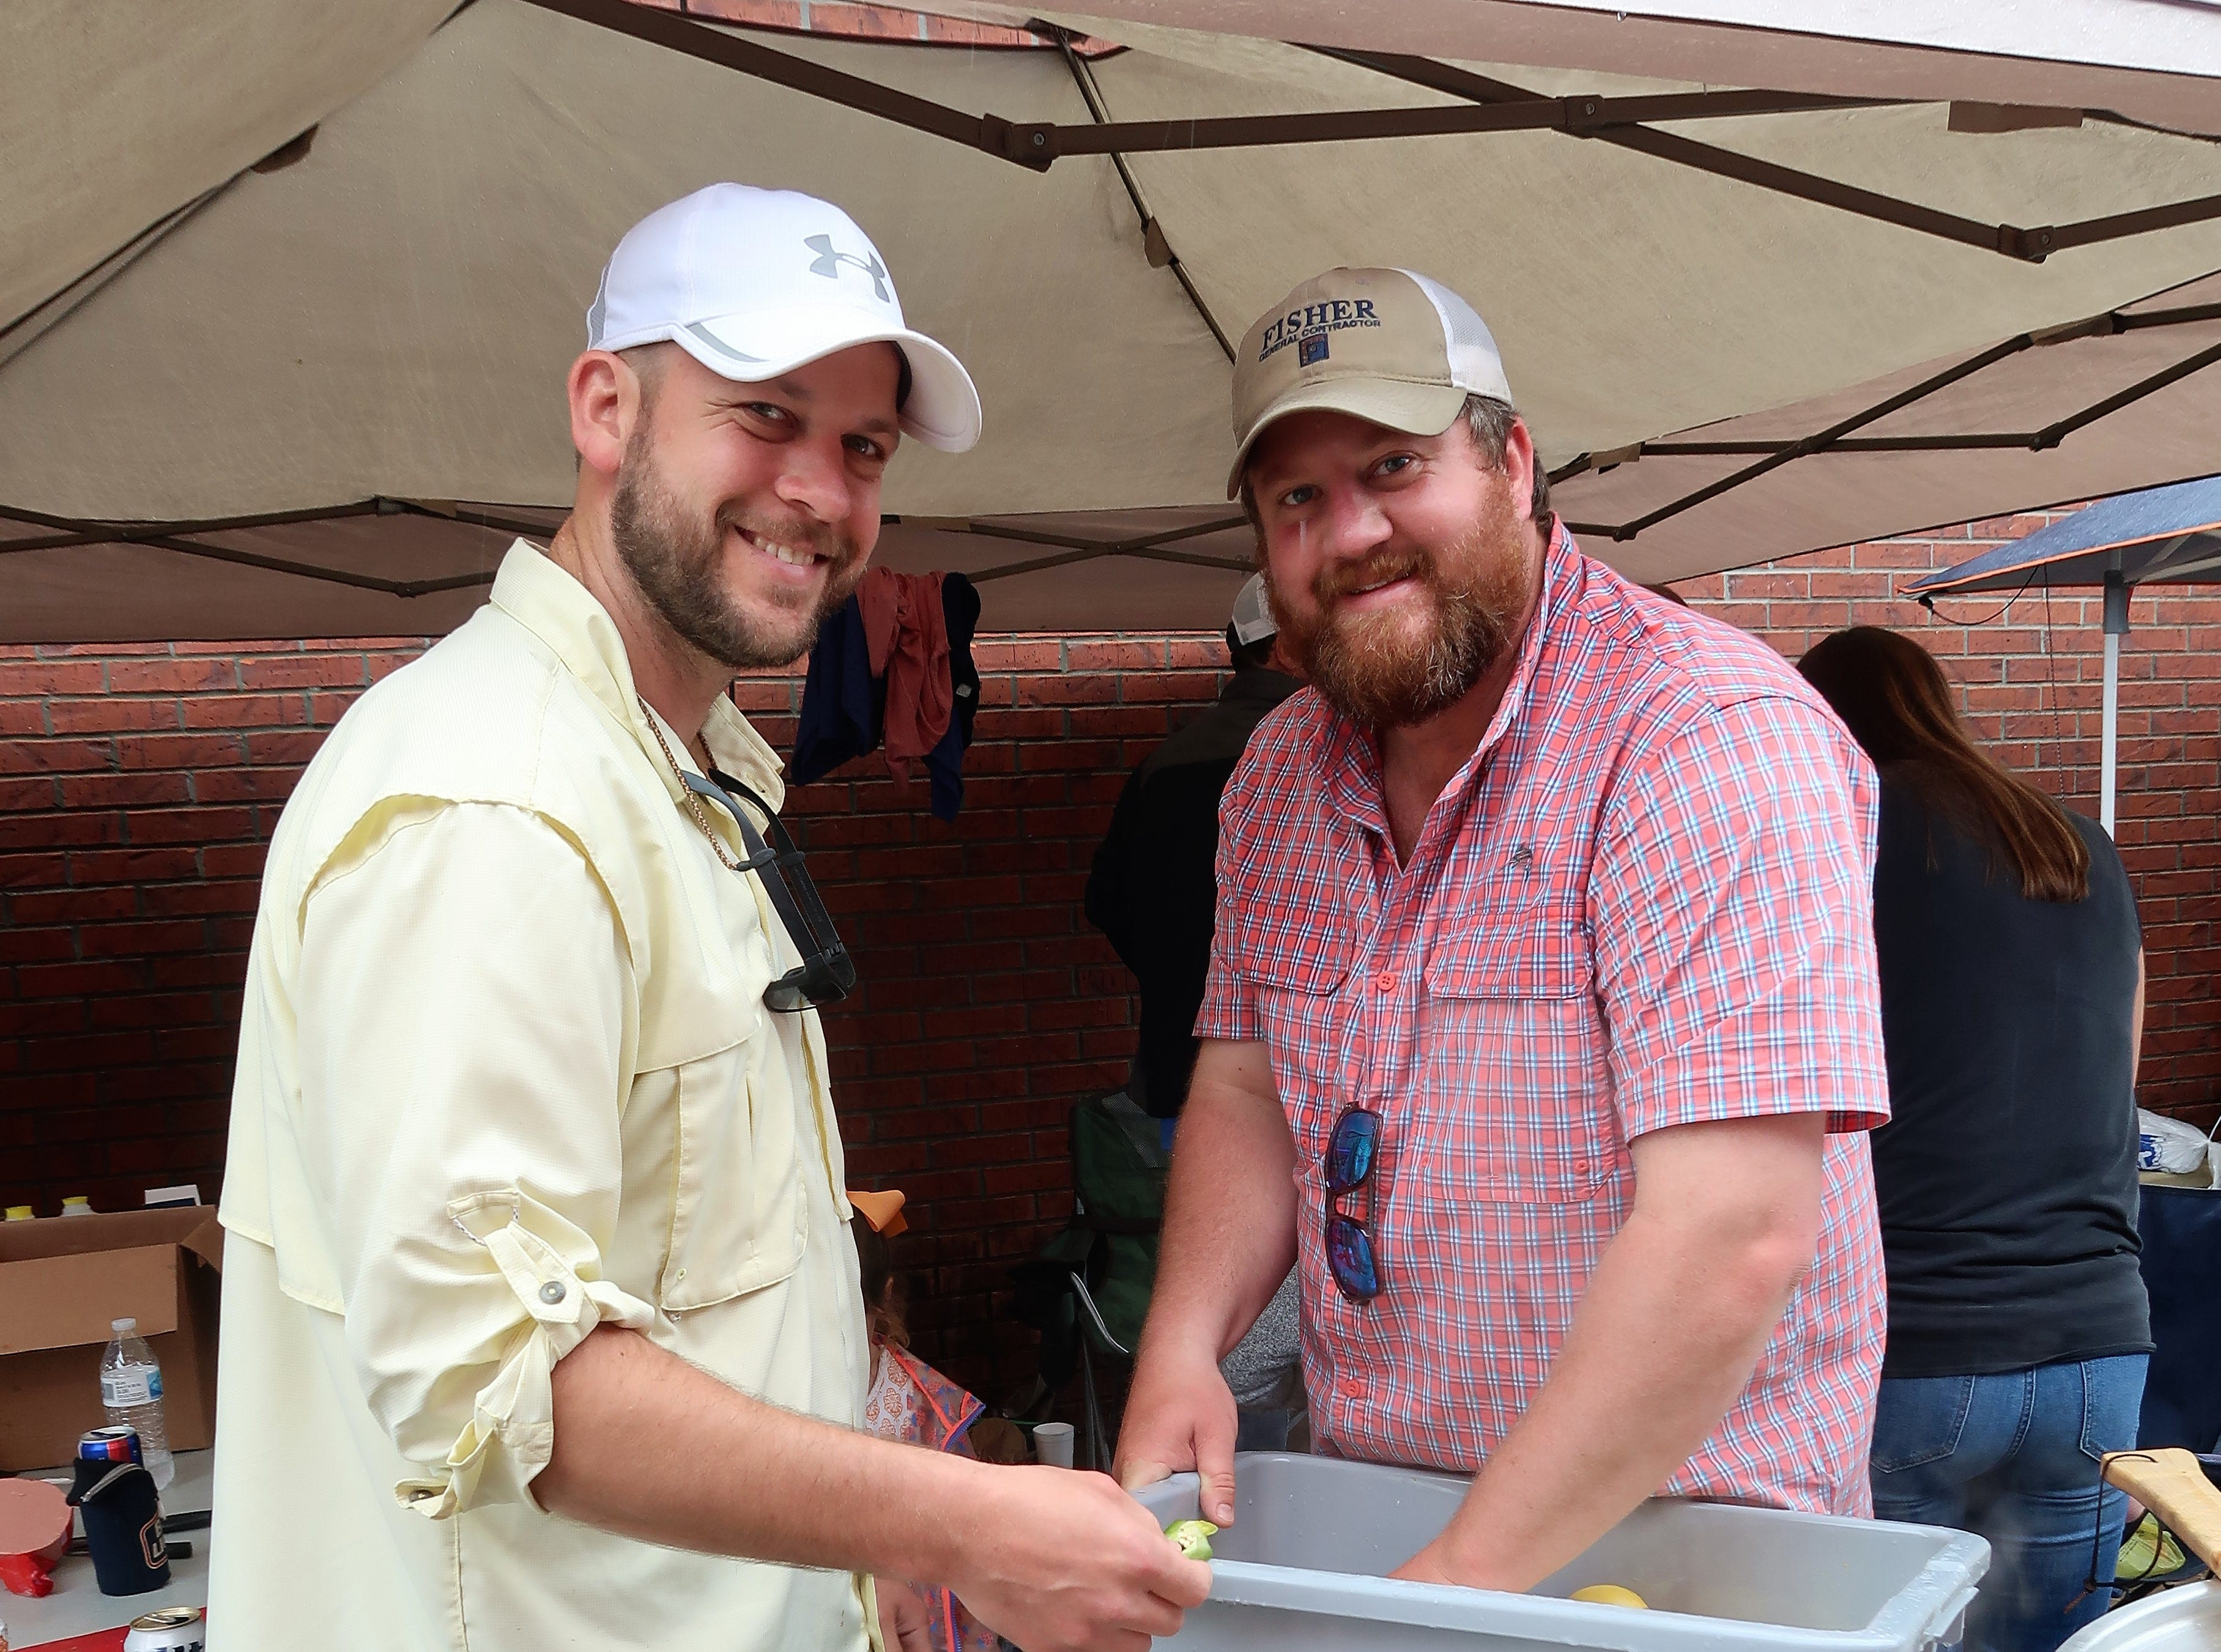 Eric and David, members of a crawfish cookteam, add some celery to their crawfish boil at the Second Annual Crawfest fundraiser for the Scarlet Rope Project at the West Tennessee Farmer's Market in Jackson on May 4, 2019.